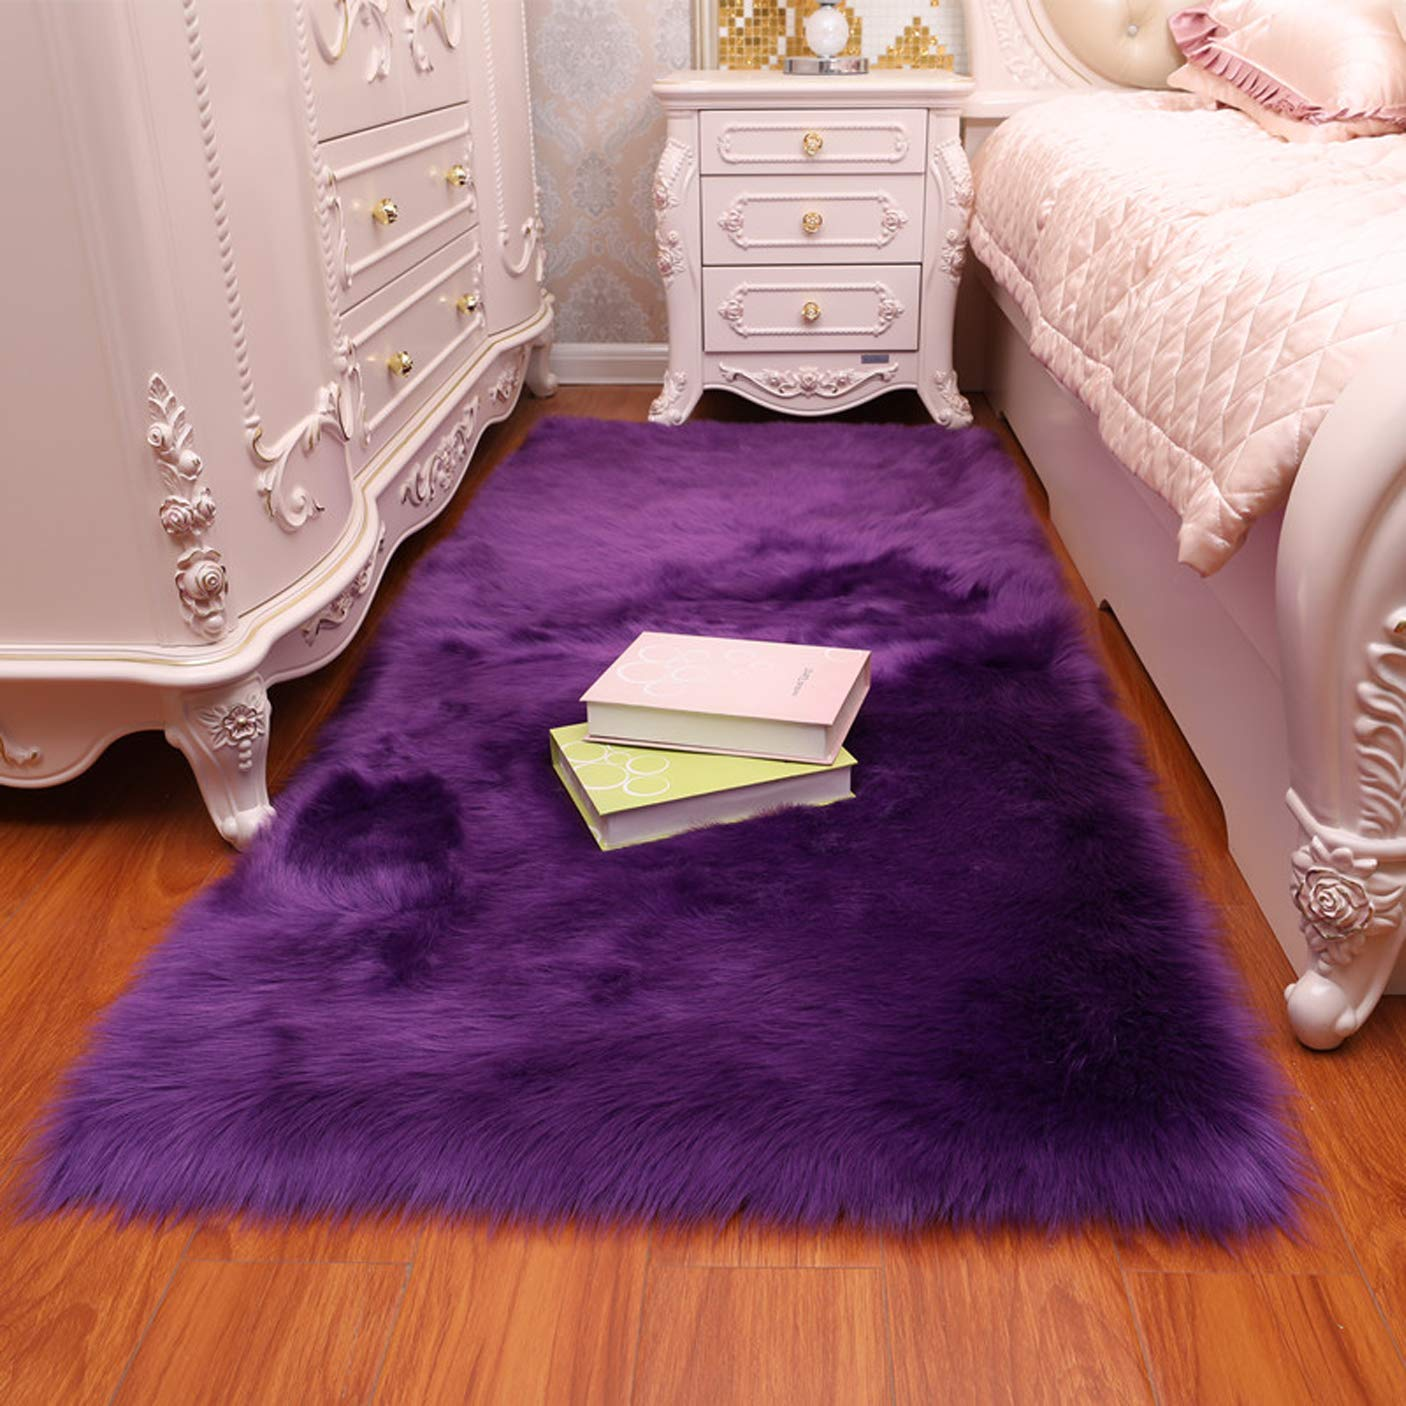 CHITONE Faux Fur Sheepskin Area Rug, Baby Bedroom Rugs Fluffy Rug Home Decorative Shaggy Rectangle Carpet, 2×6 Feet, Purple